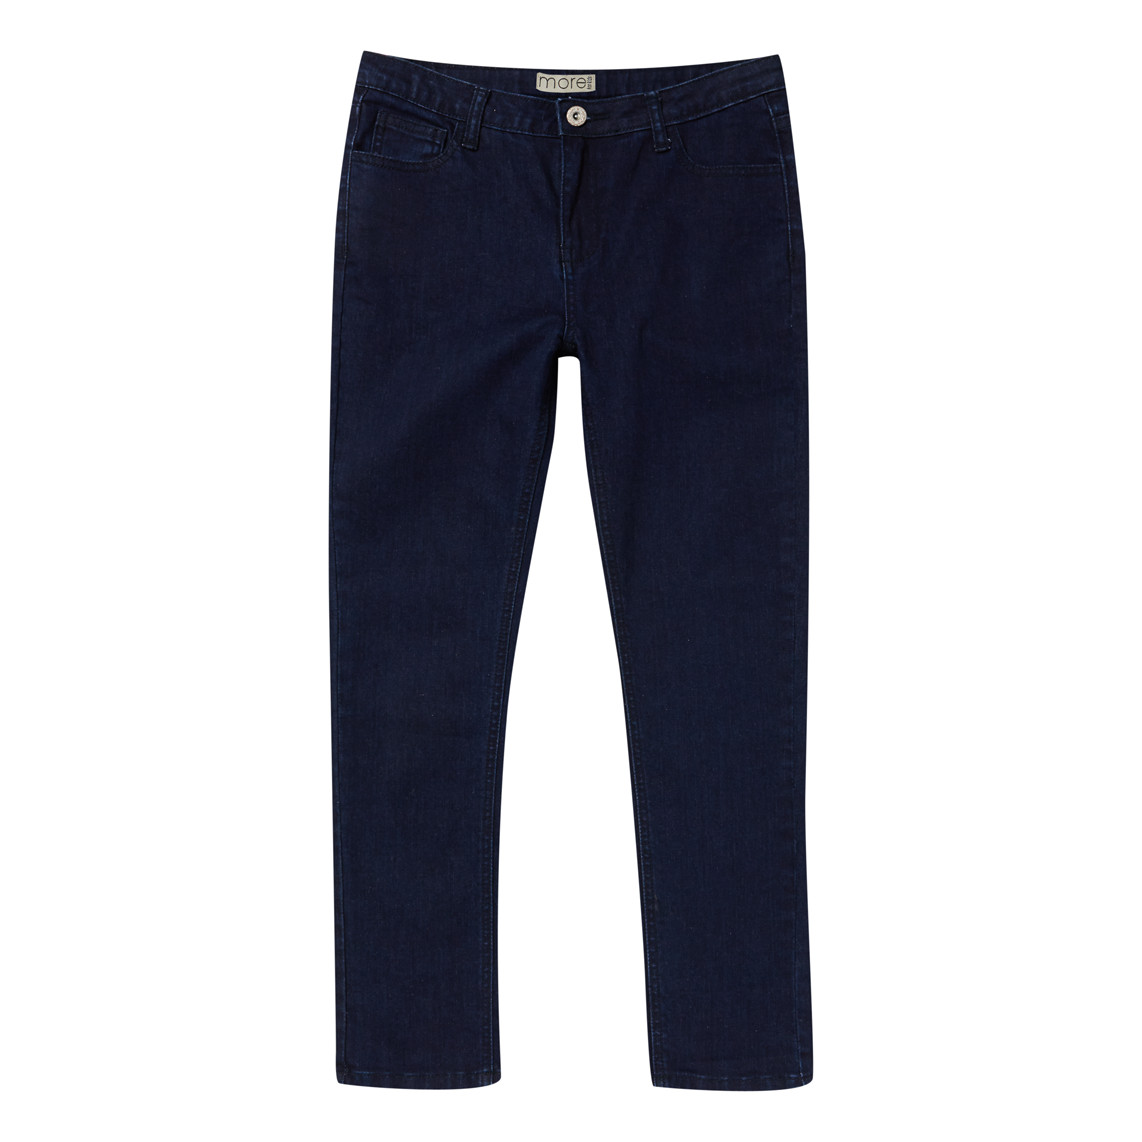 GIRLS DARK WASH JEANS_FR